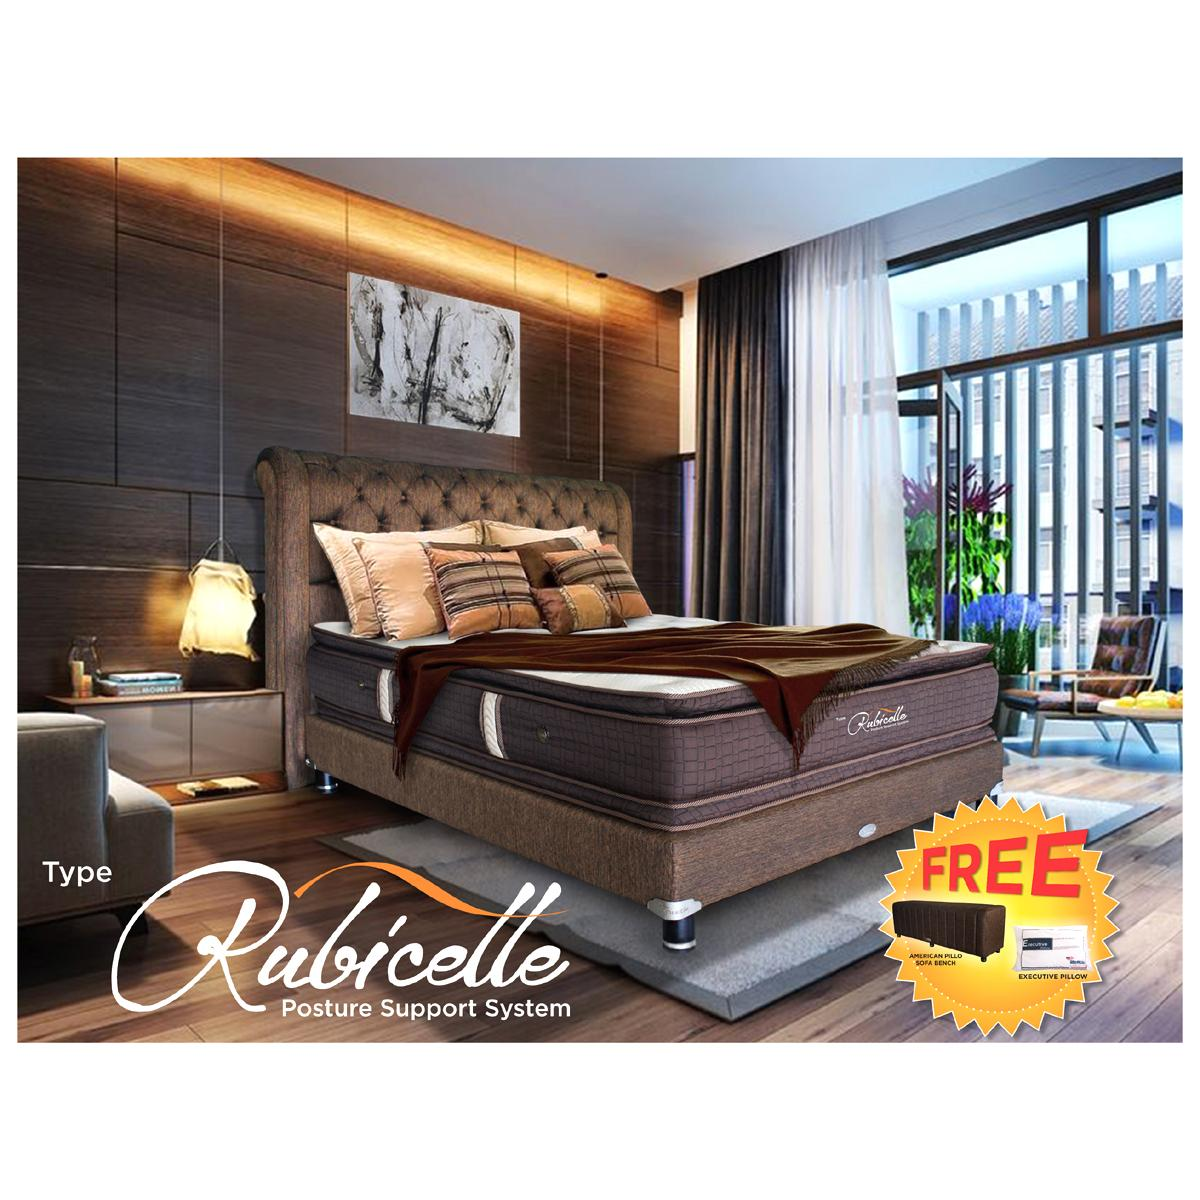 FREE ONGKIR American Pillo Spring Bed RUBICELLE - BED SET 200 x 200